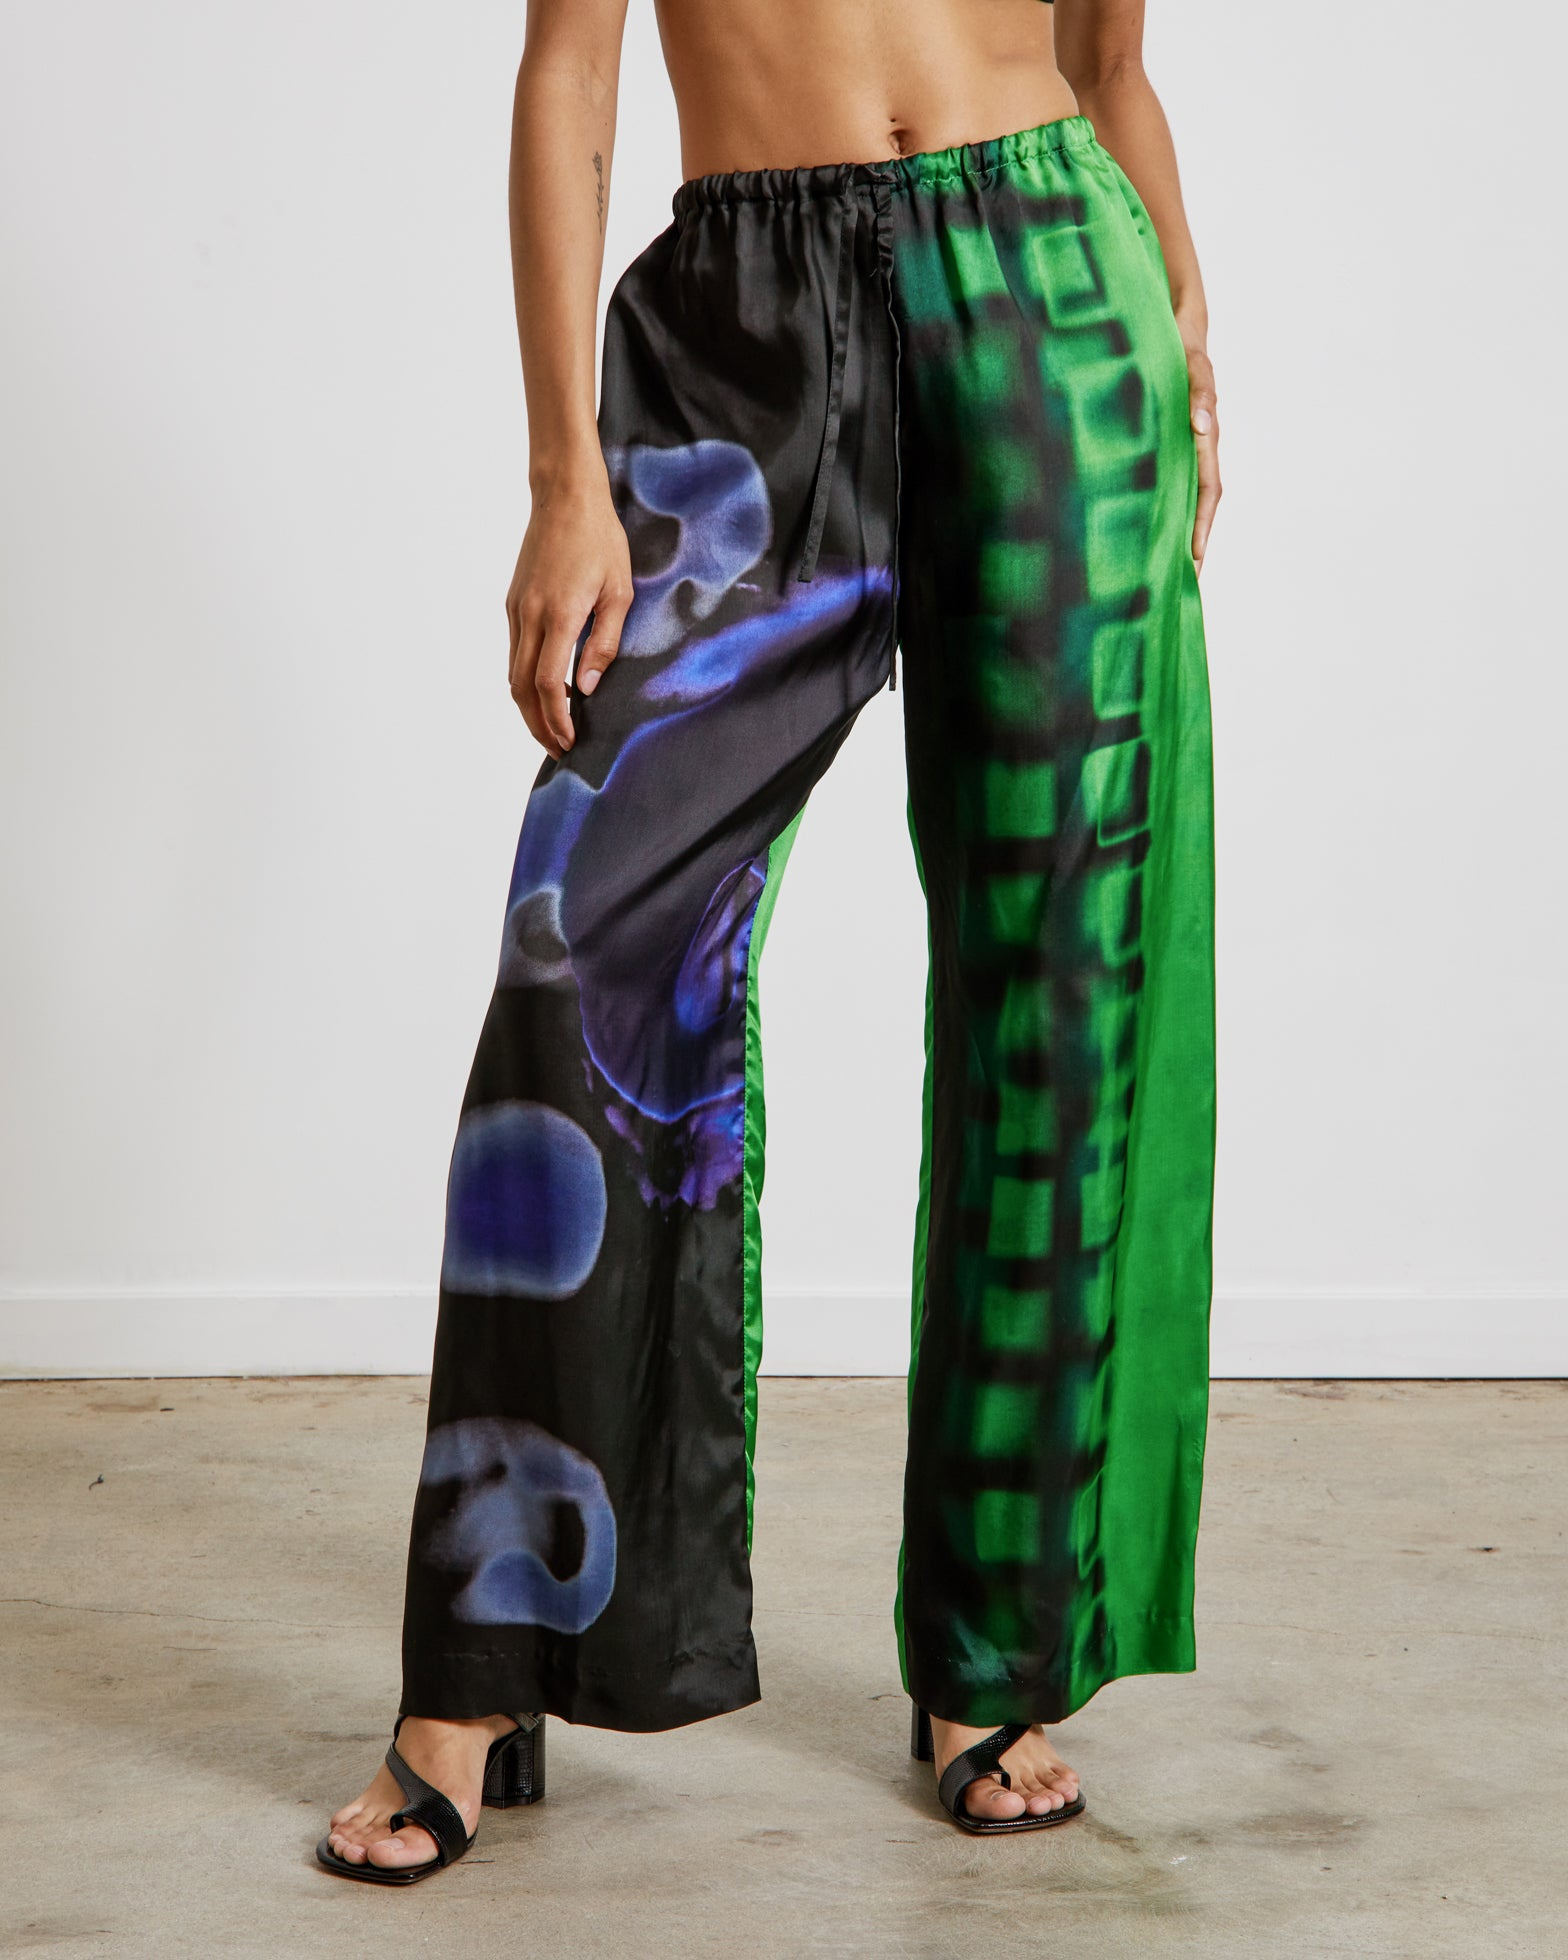 Mohawk General Store | Dries Van Noten | Puvis Bis 2068 W.W. Pants in Green